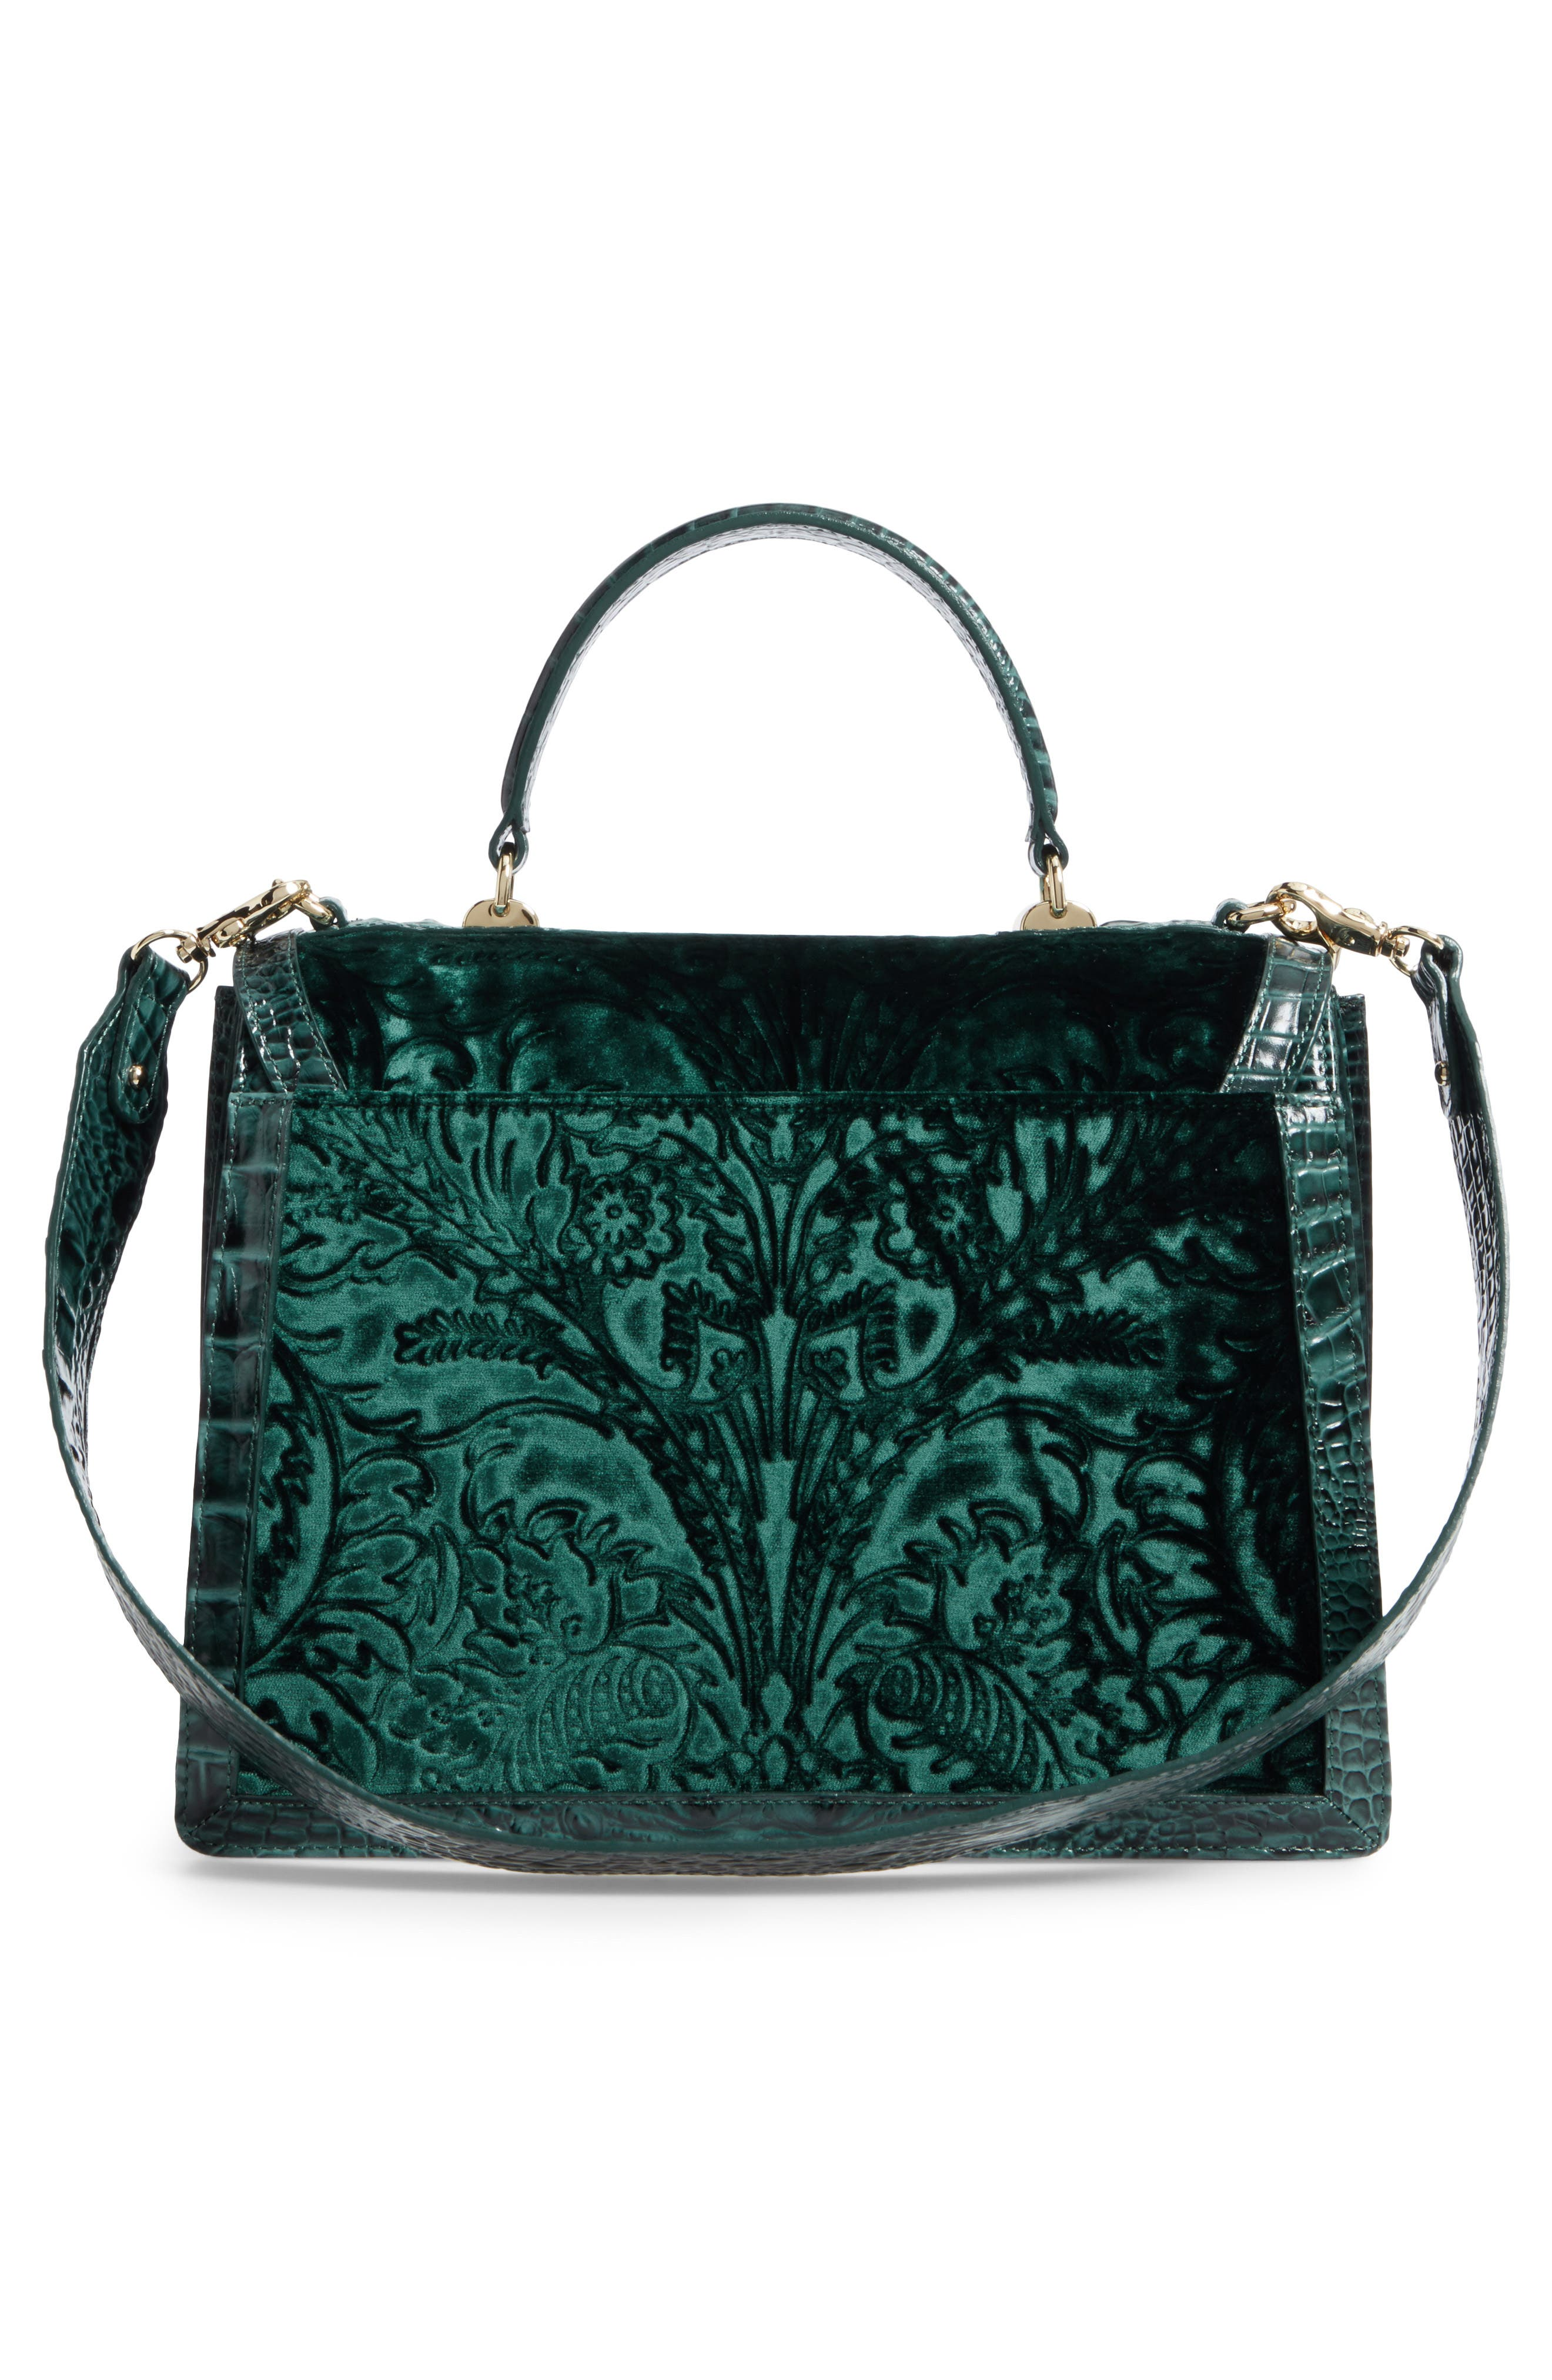 Main Image - Brahmin Ivy Cellini Gabriella Embossed Velvet Top Handle Satchel